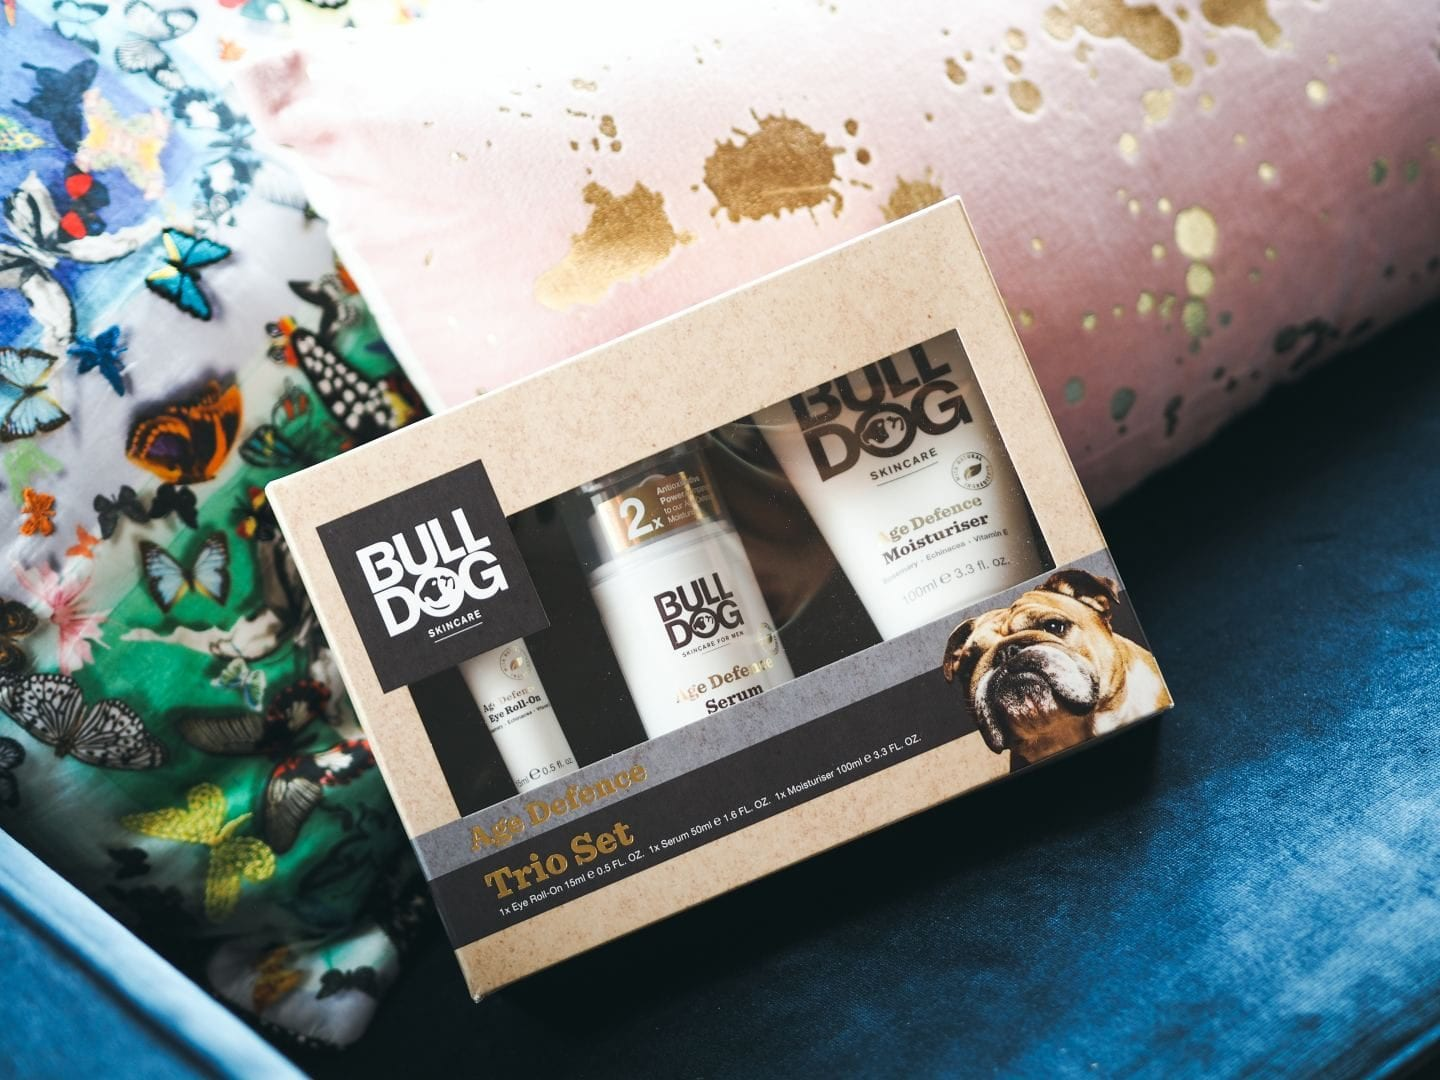 Bulldog 'Age Defence' Gift Set